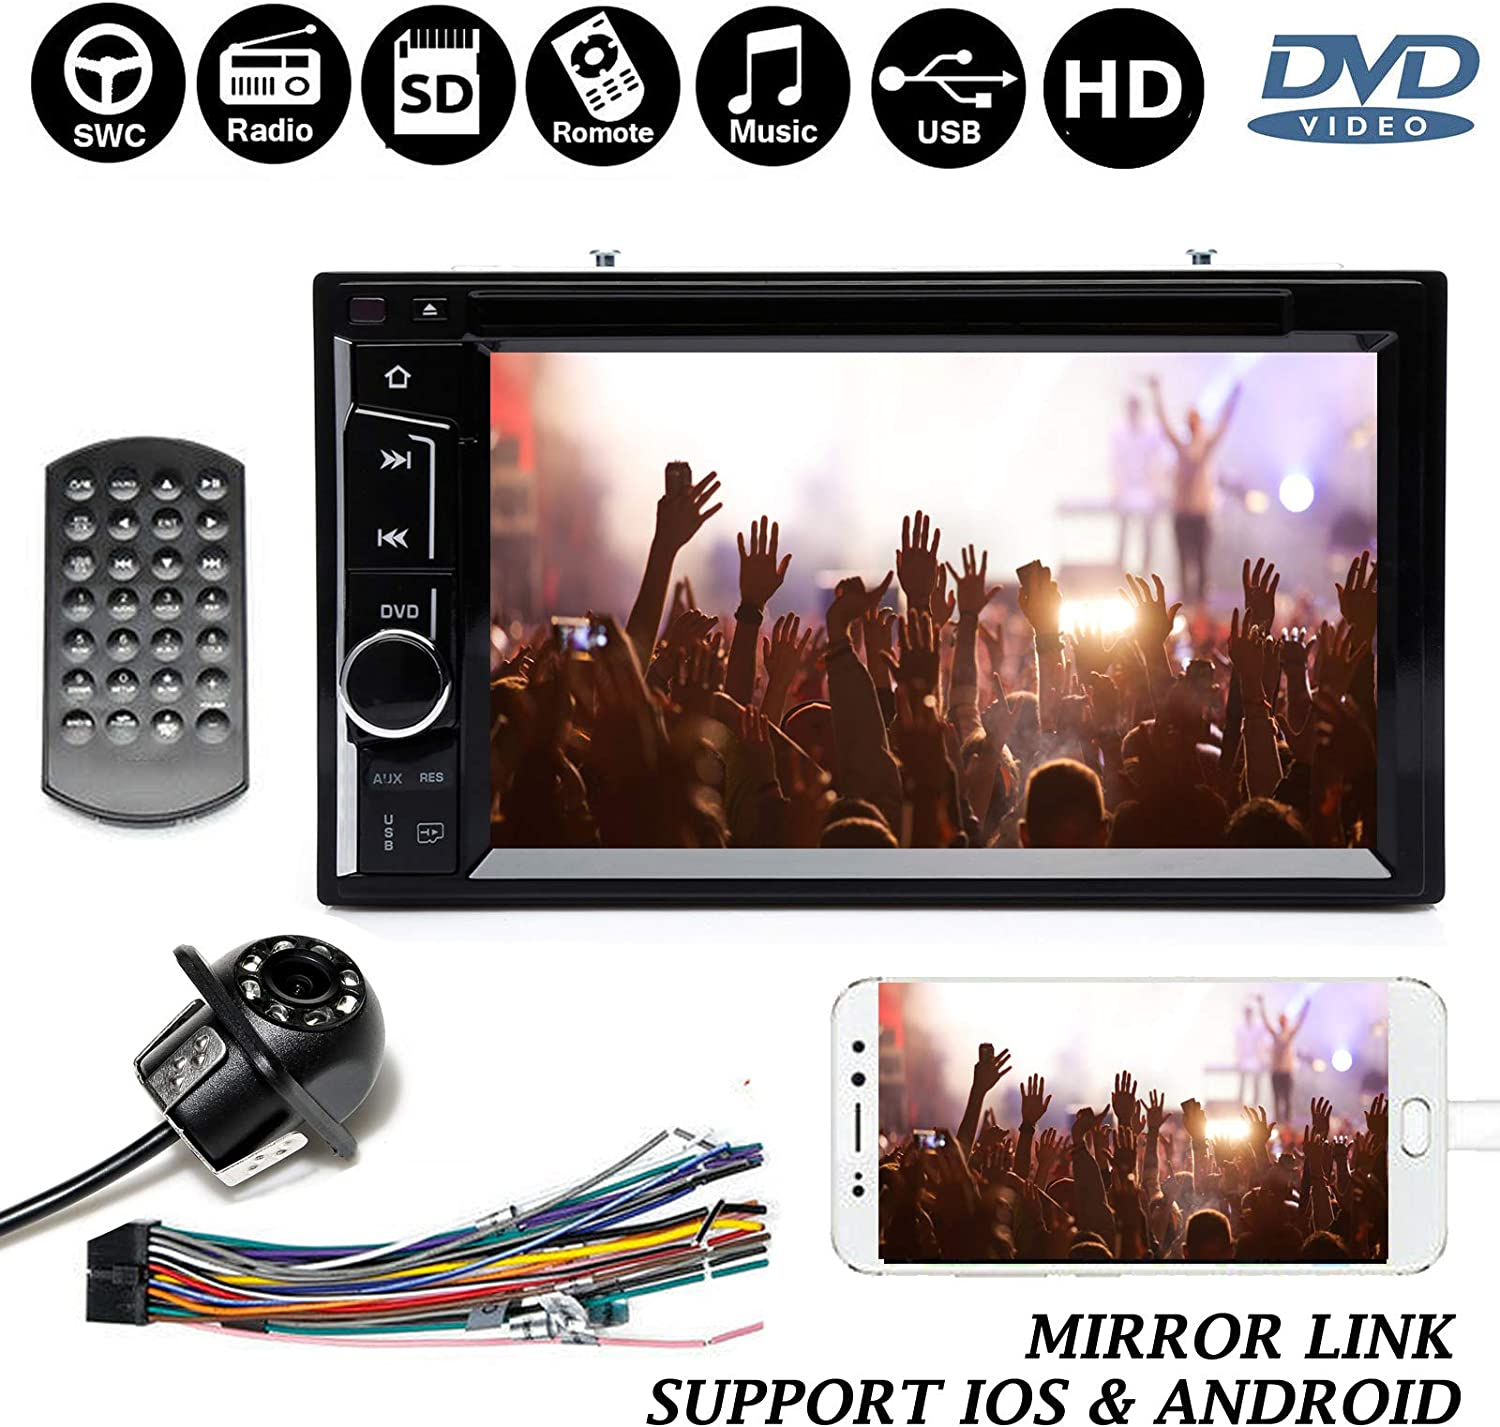 Two Din Car Radio with Backup Camera, Bluetooth, Support Dual System Mirrorlink,CD/DVD Player, Subwoofer Control, Aux, USB, 6.2 Touchscreen Indash for Chevy Avalanche 2007-2012 71ZjE5WSmyLSL1500_